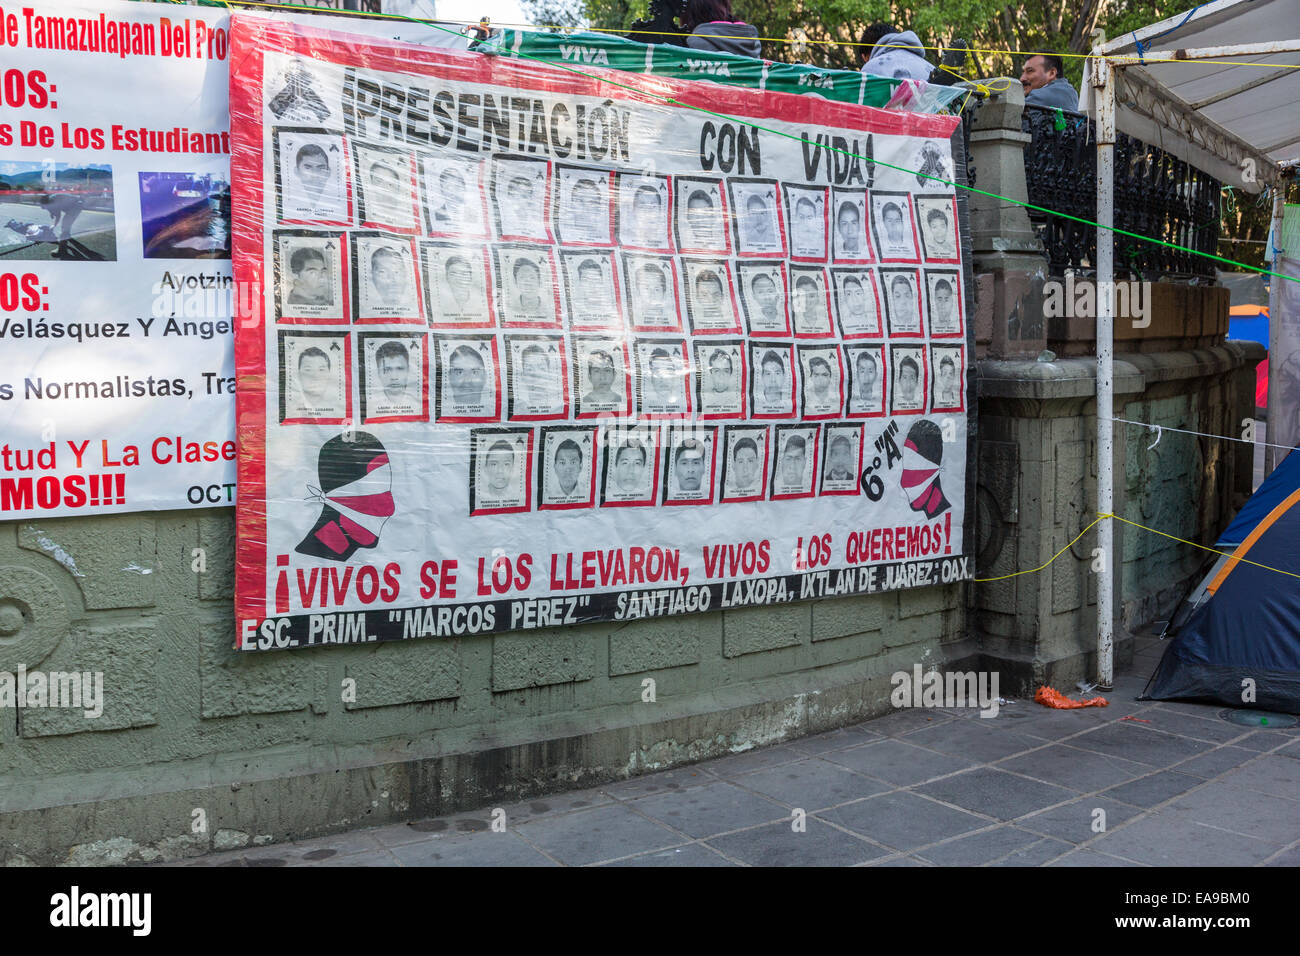 Banners demanding justice for the missing students believed executed by corrupt police hang from the main square Stock Photo